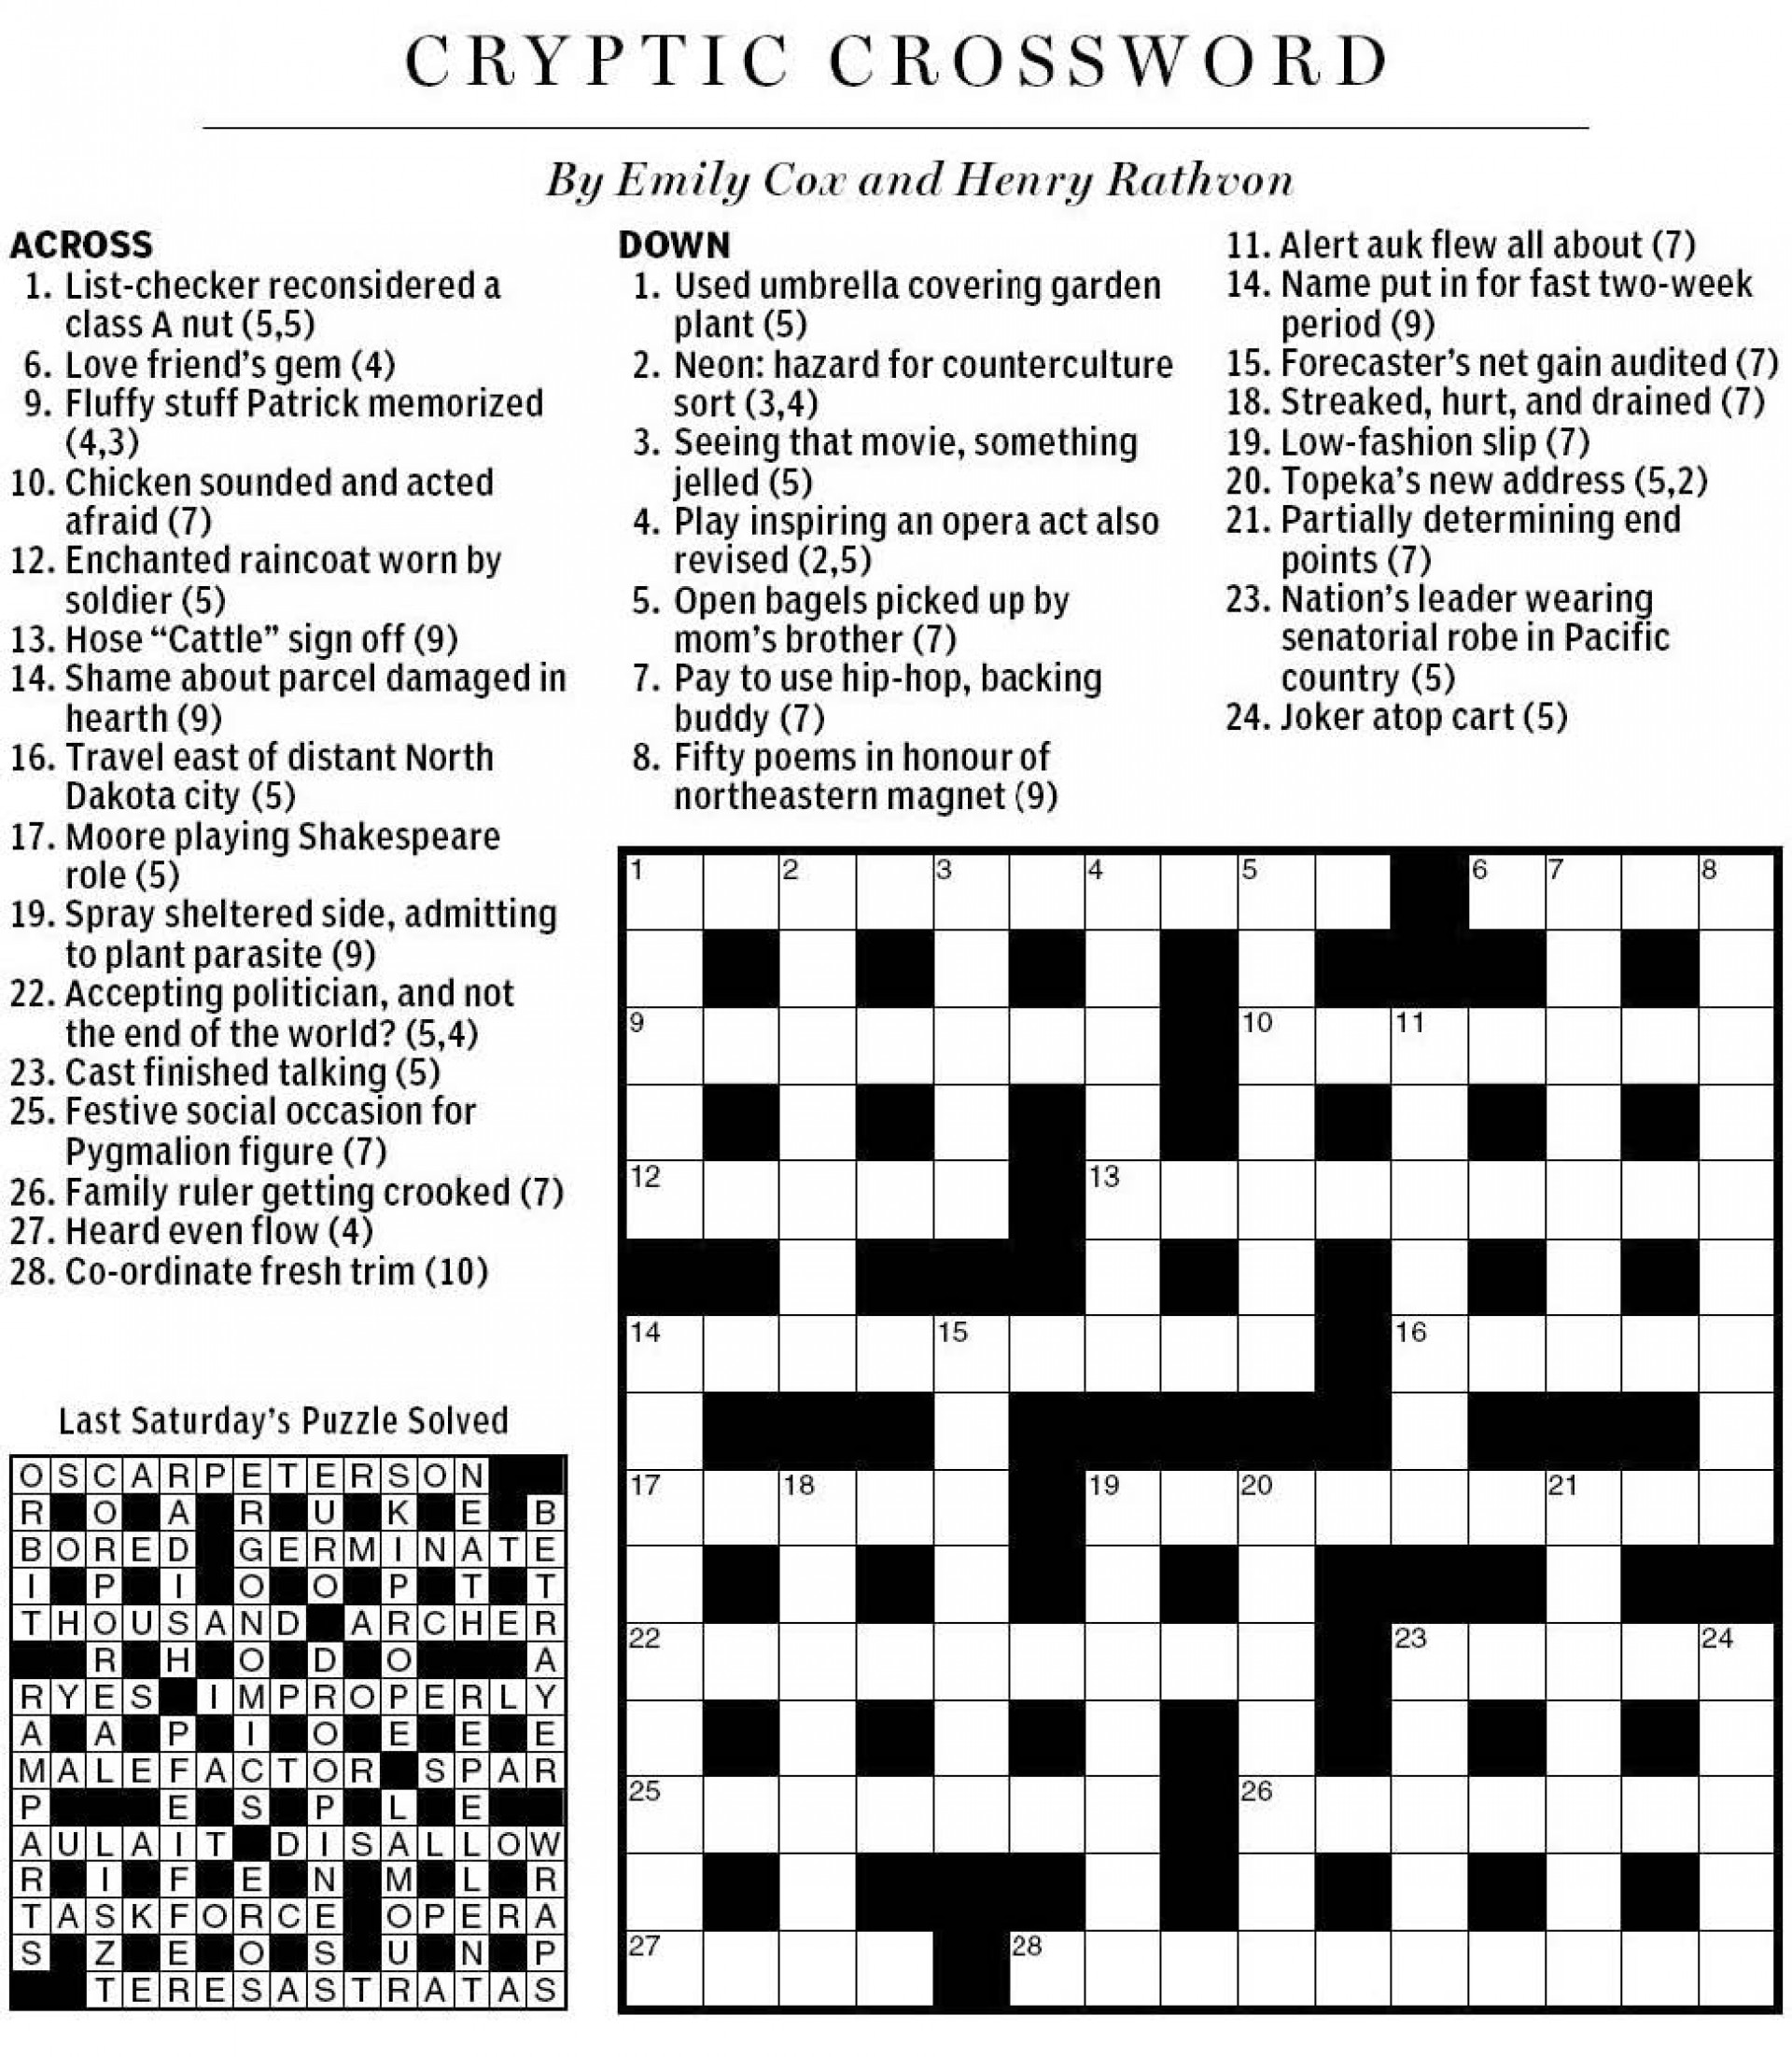 014 Name In Essays Crossword Clue Np20cryptic202010 2520sat Essay Excellent 1920